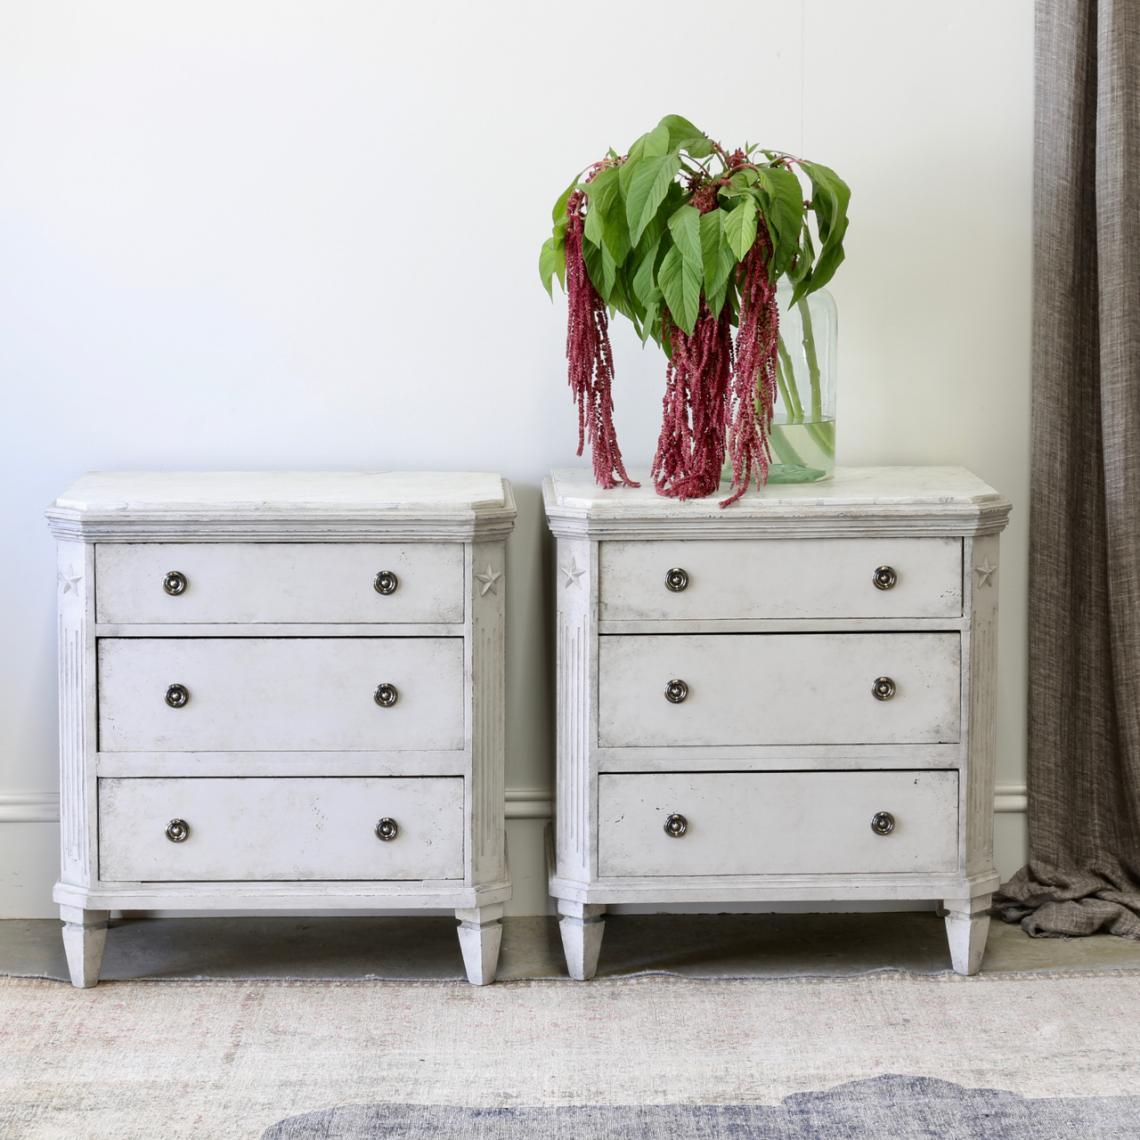 114-40 - Pair of Swedish Commodes